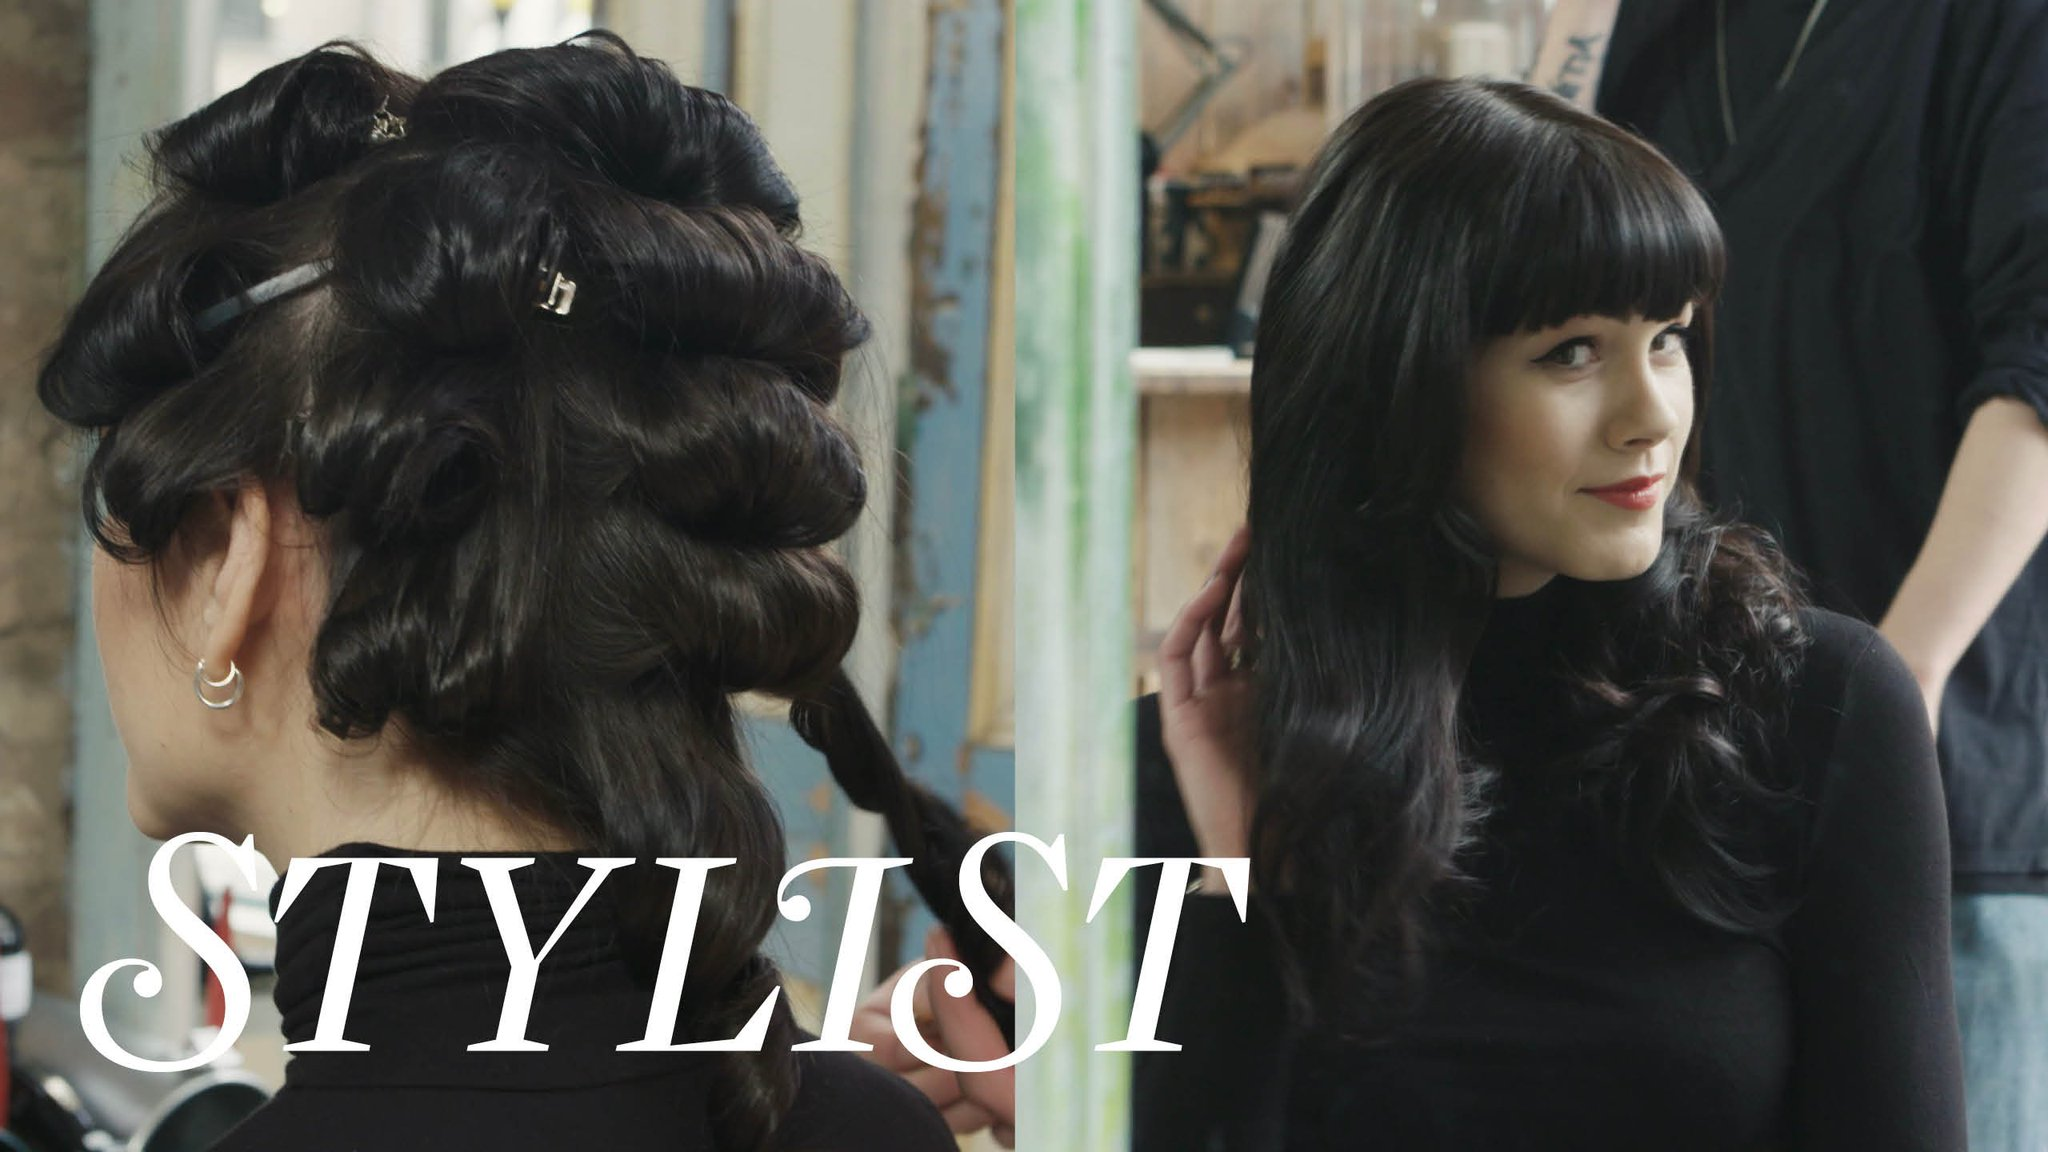 Get inspired with these 3 easy styles for long locks https://t.co/7Y4XFtsE1n https://t.co/1ENwwEIVsG